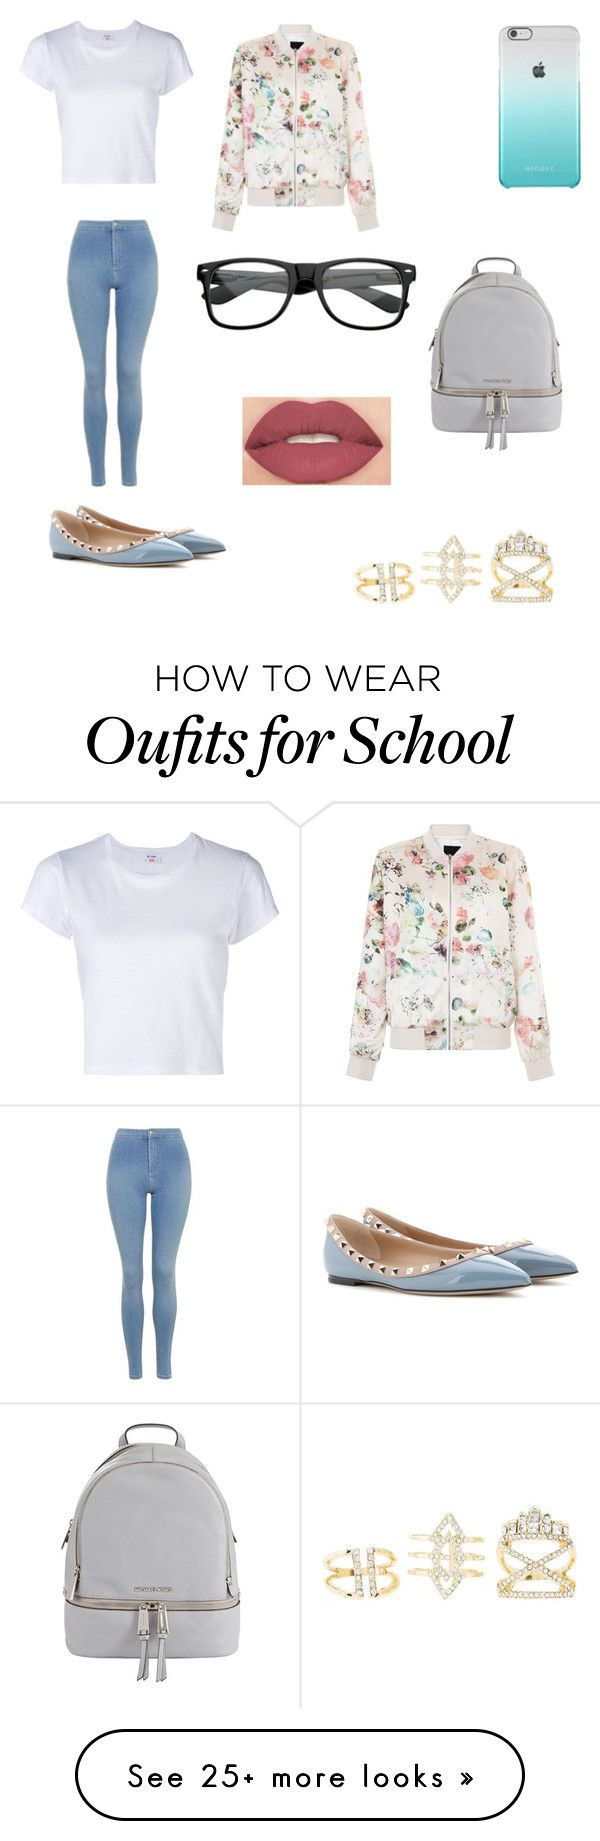 """School outfit"" by junebug02 on Polyvore featuring RE/DONE, Topshop, MICHAEL Michael Kors, Valentino, New Look, Charlotte Russe and Smashbox"